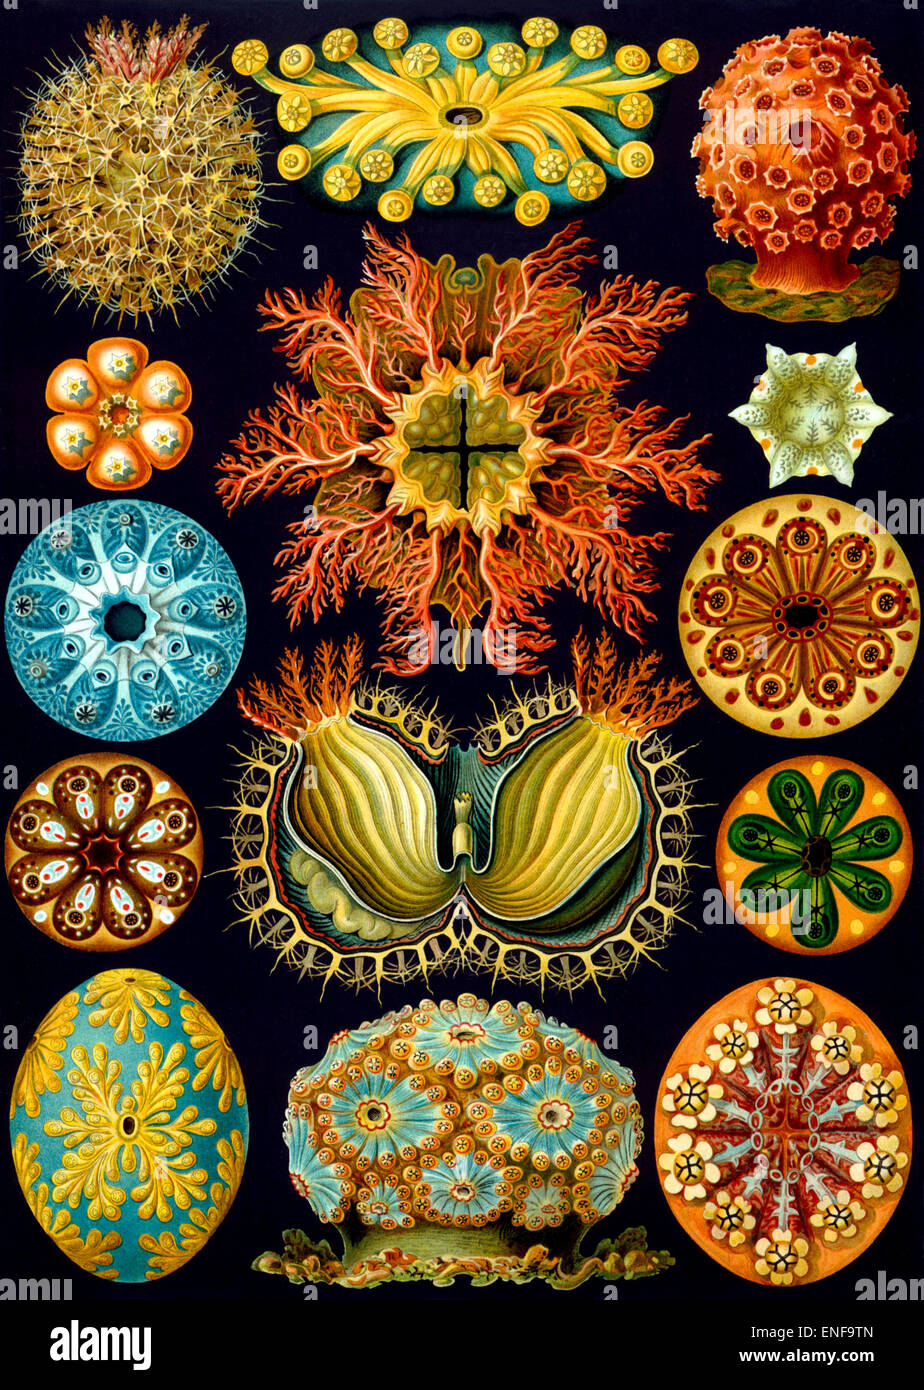 Ascidiacea (Sea Squirts), by Ernst Haeckel, 1904 - Editorial use only. - Stock Image